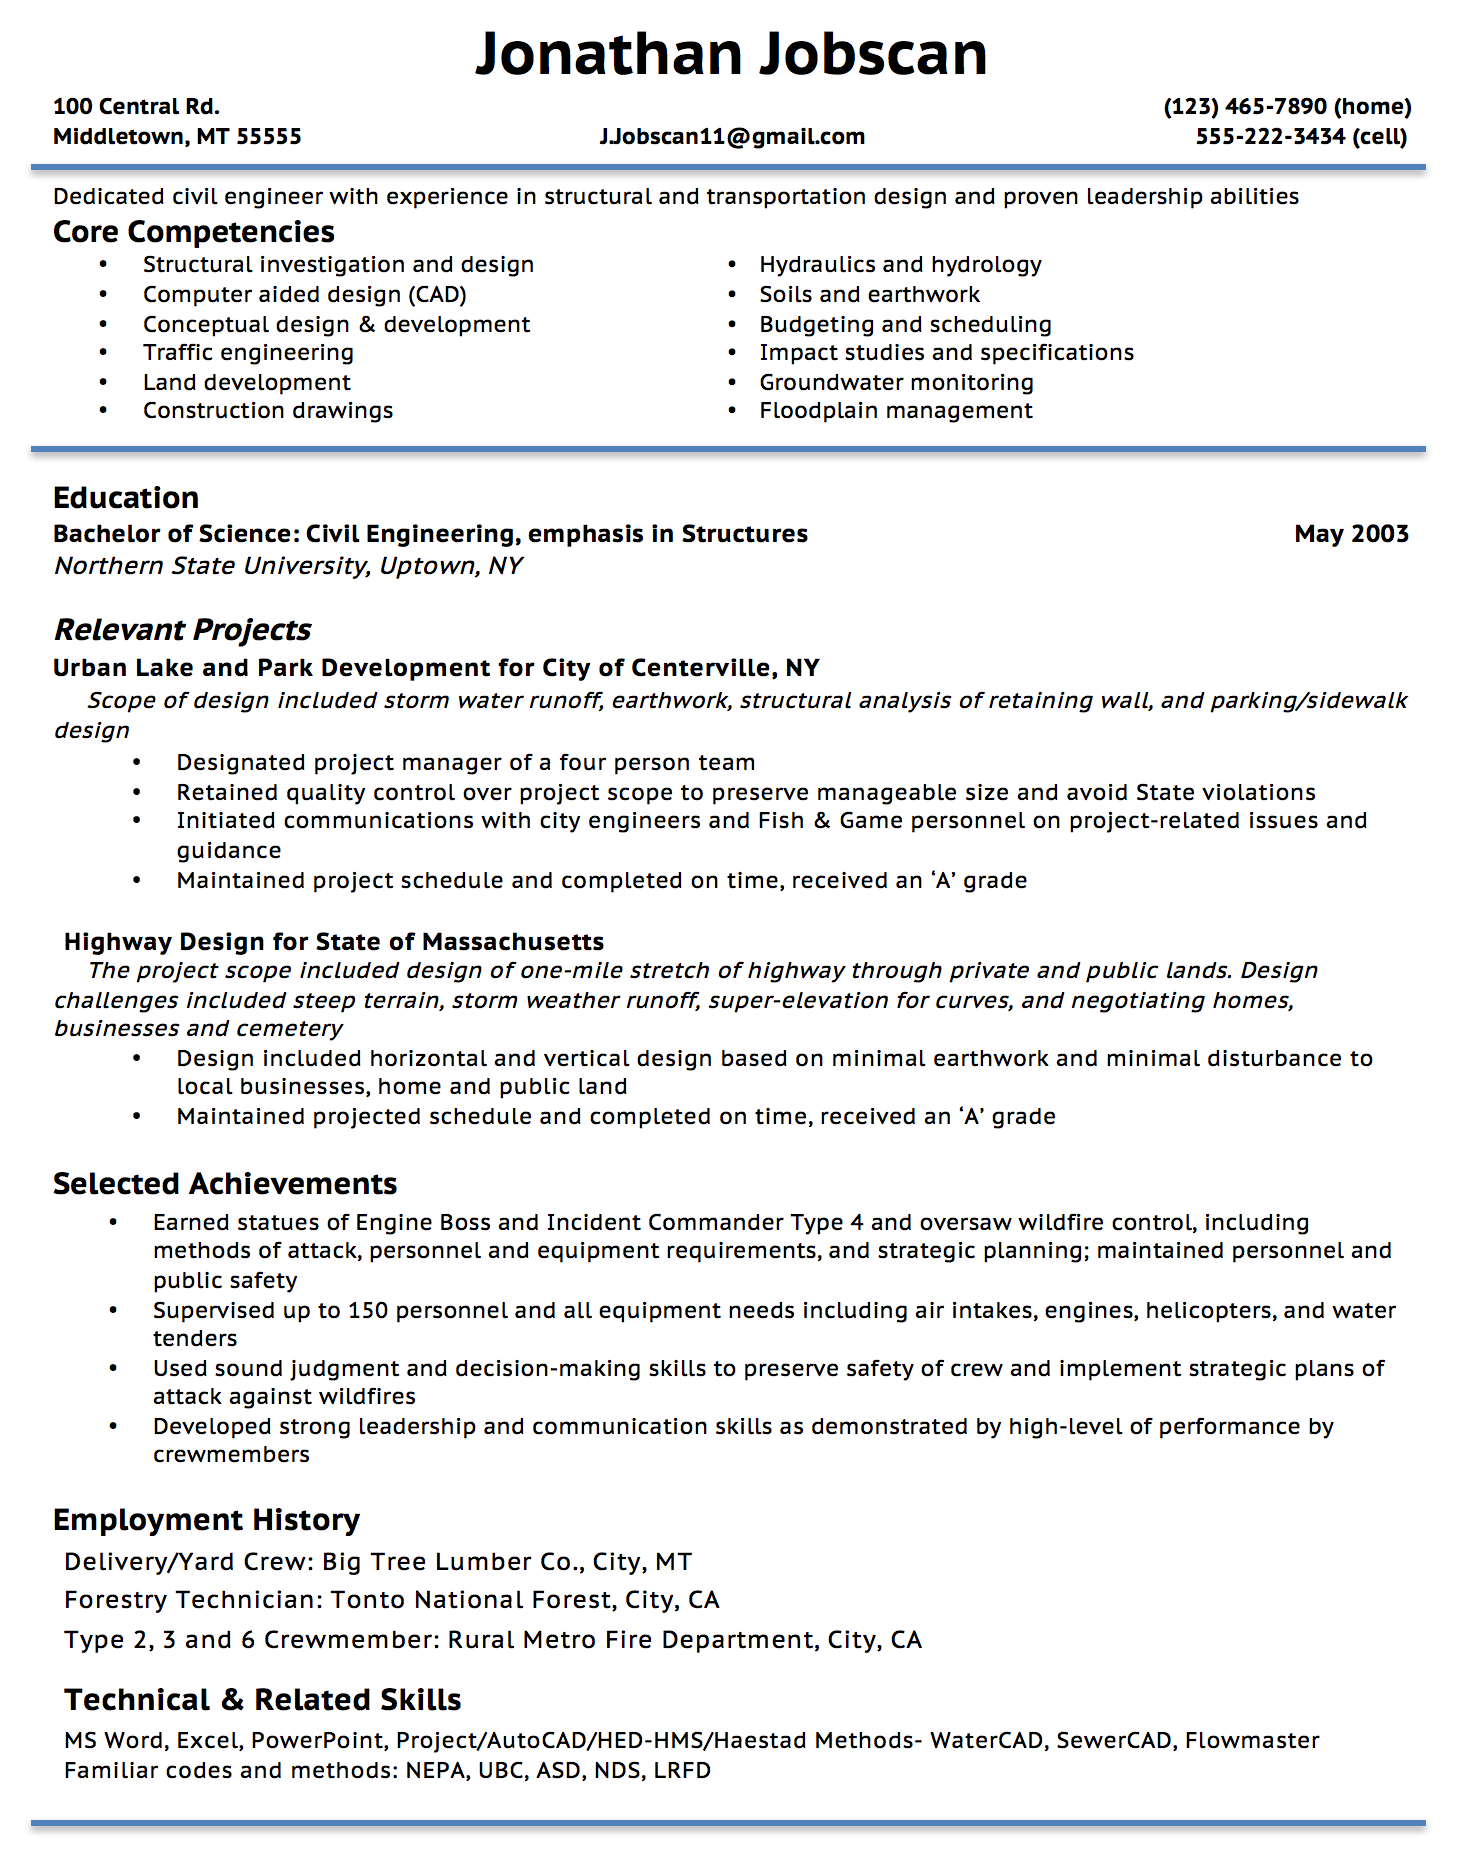 Opposenewapstandardsus  Ravishing Resume Writing Guide  Jobscan With Fair Example Of A Functional Resume Format With Cool Best Designed Resumes Also Cashier Job Resume In Addition Marketing Associate Resume And Waitress Resumes As Well As Promotion On Resume Additionally Resume Editing Service From Jobscanco With Opposenewapstandardsus  Fair Resume Writing Guide  Jobscan With Cool Example Of A Functional Resume Format And Ravishing Best Designed Resumes Also Cashier Job Resume In Addition Marketing Associate Resume From Jobscanco